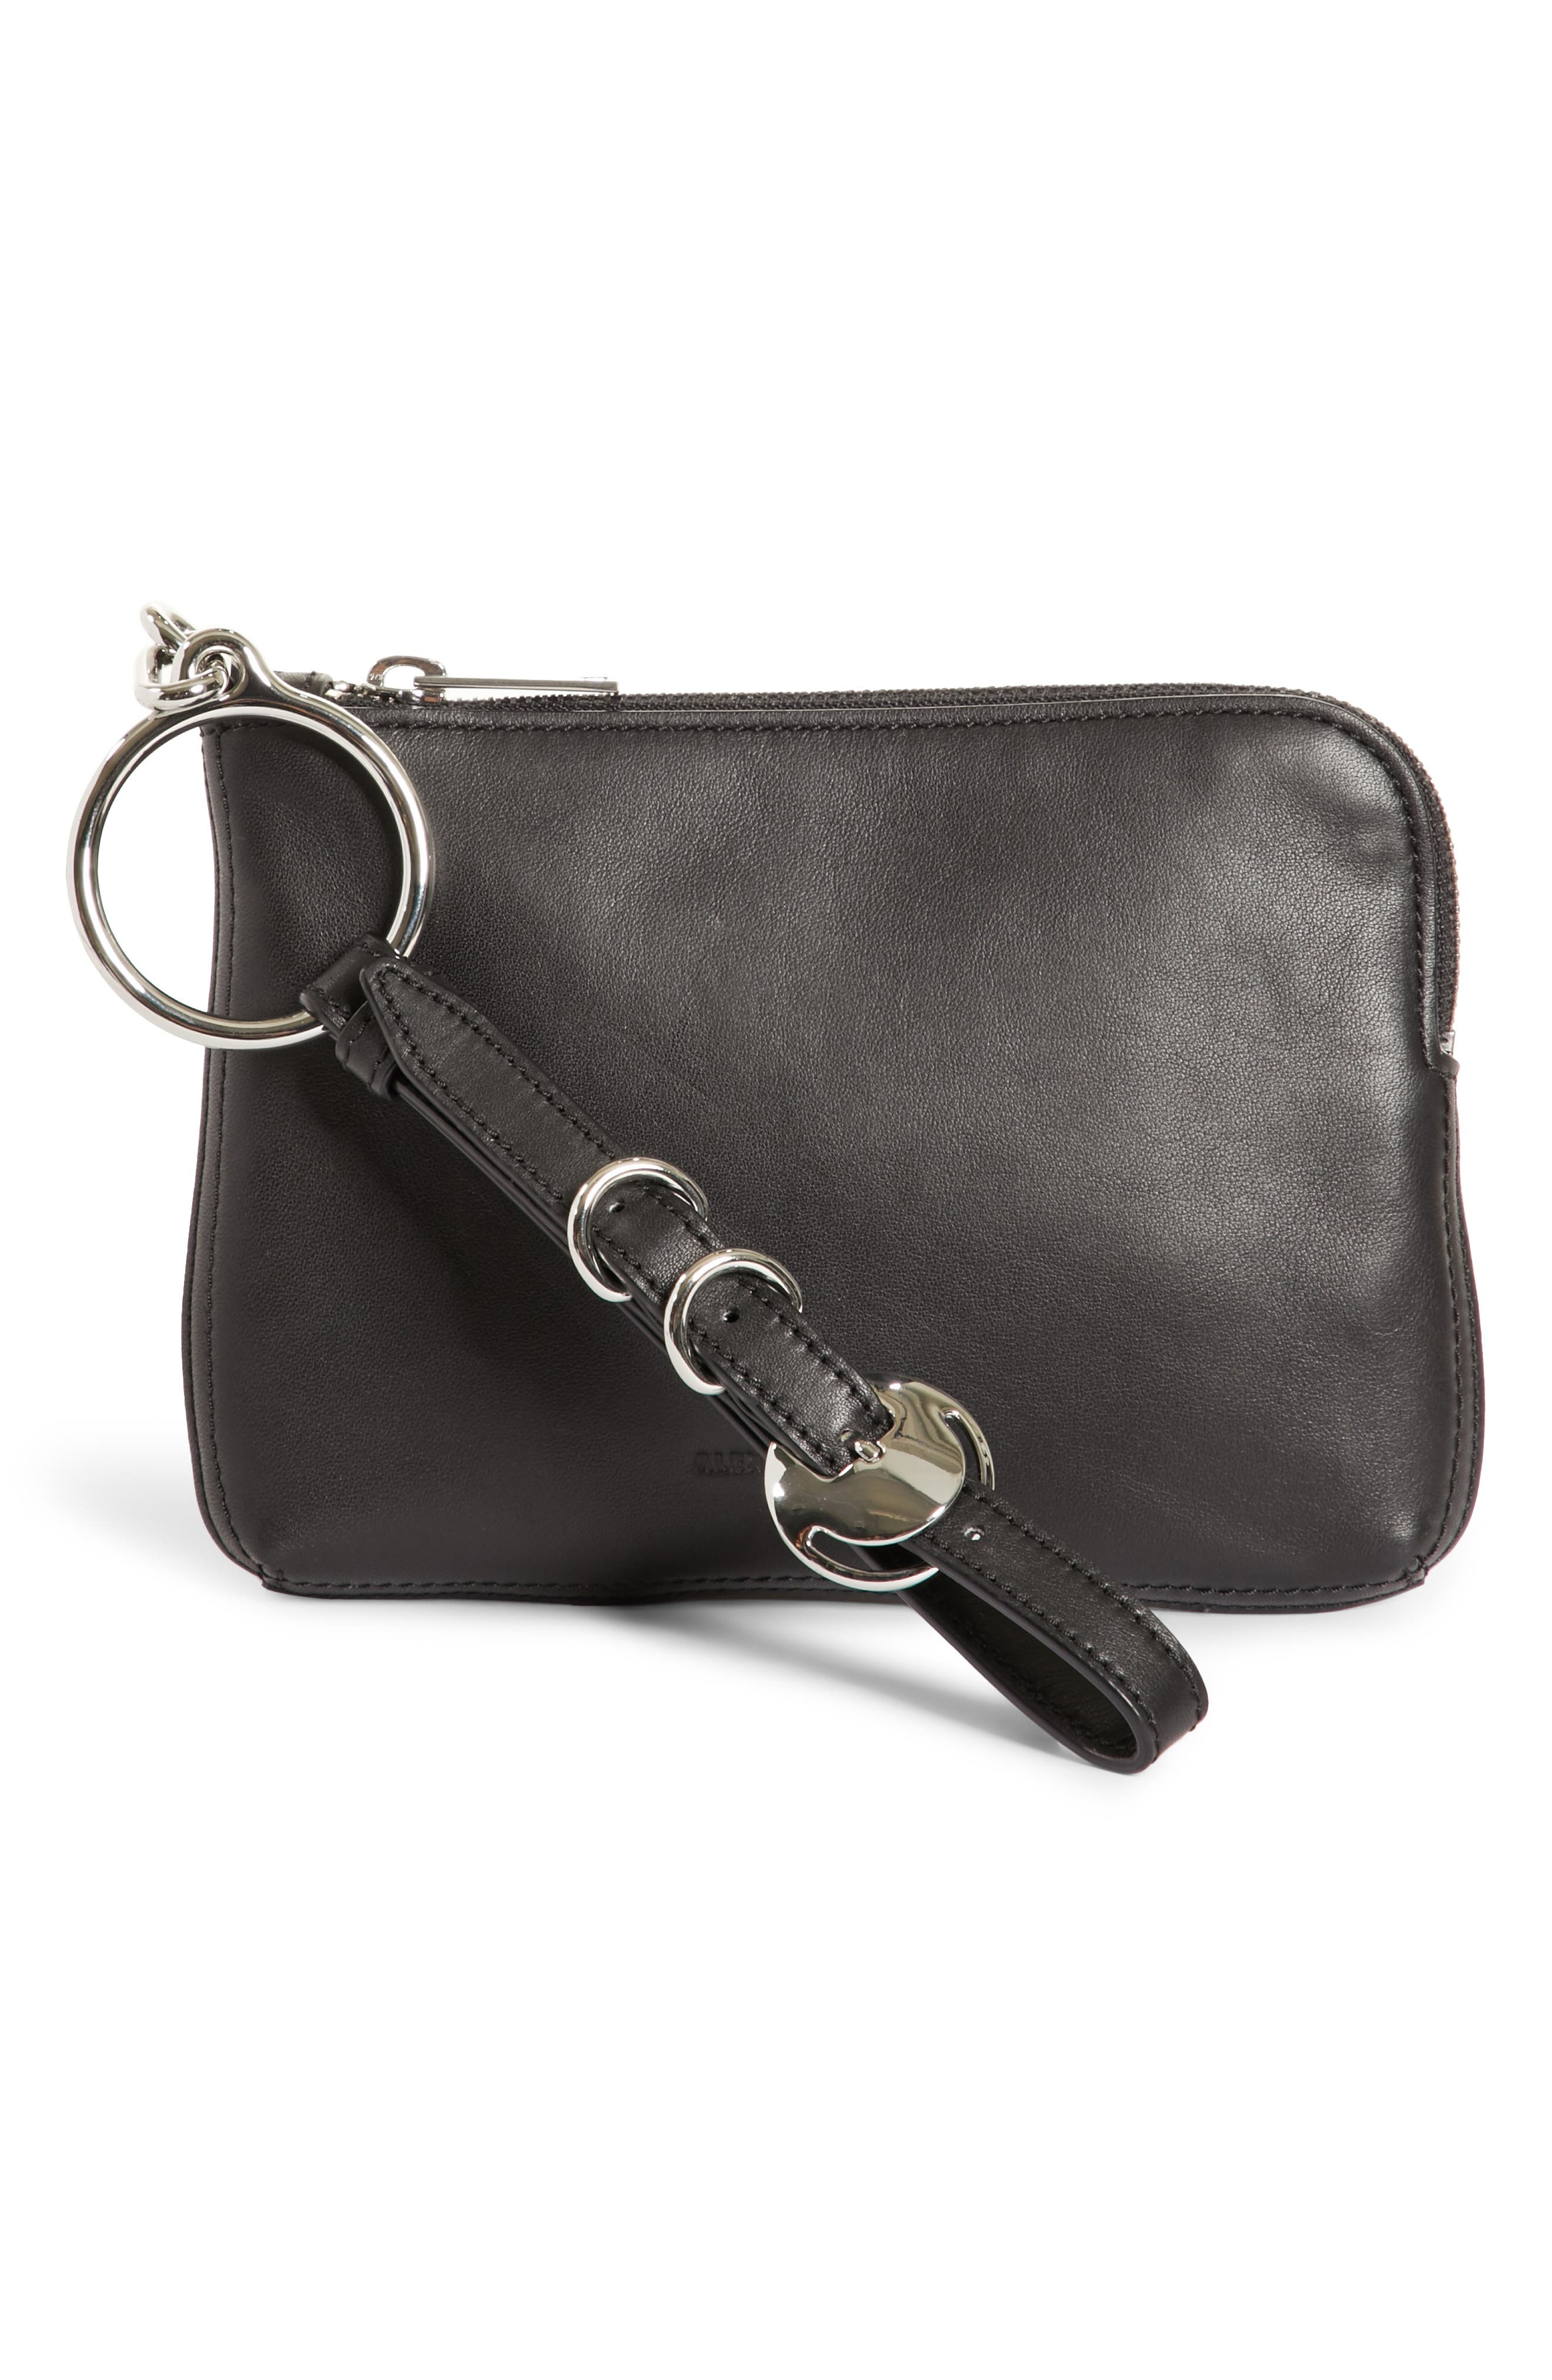 Alternate Image 1 Selected - Alexander Wang Small Ace Nappa Leather Wristlet